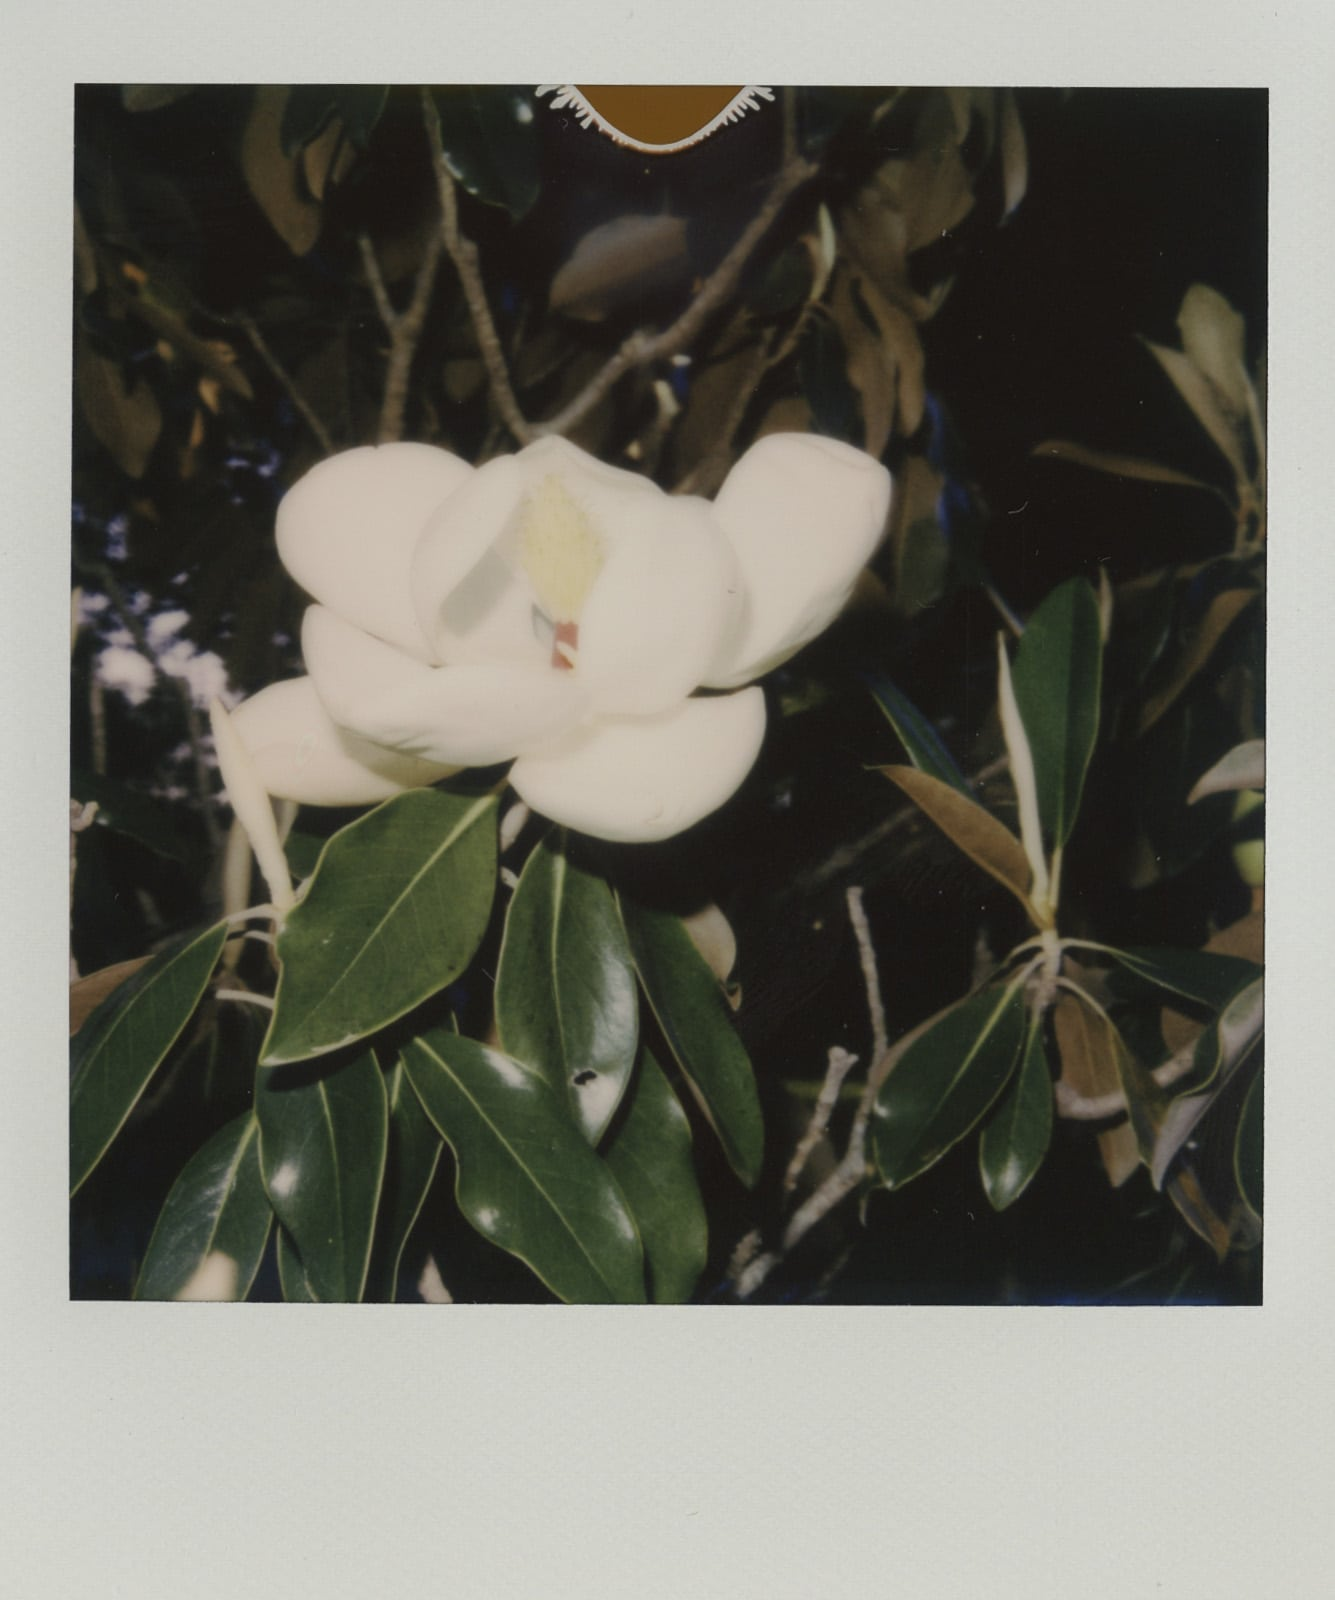 A beautiful blooming Magnolia flower Polaroid photos